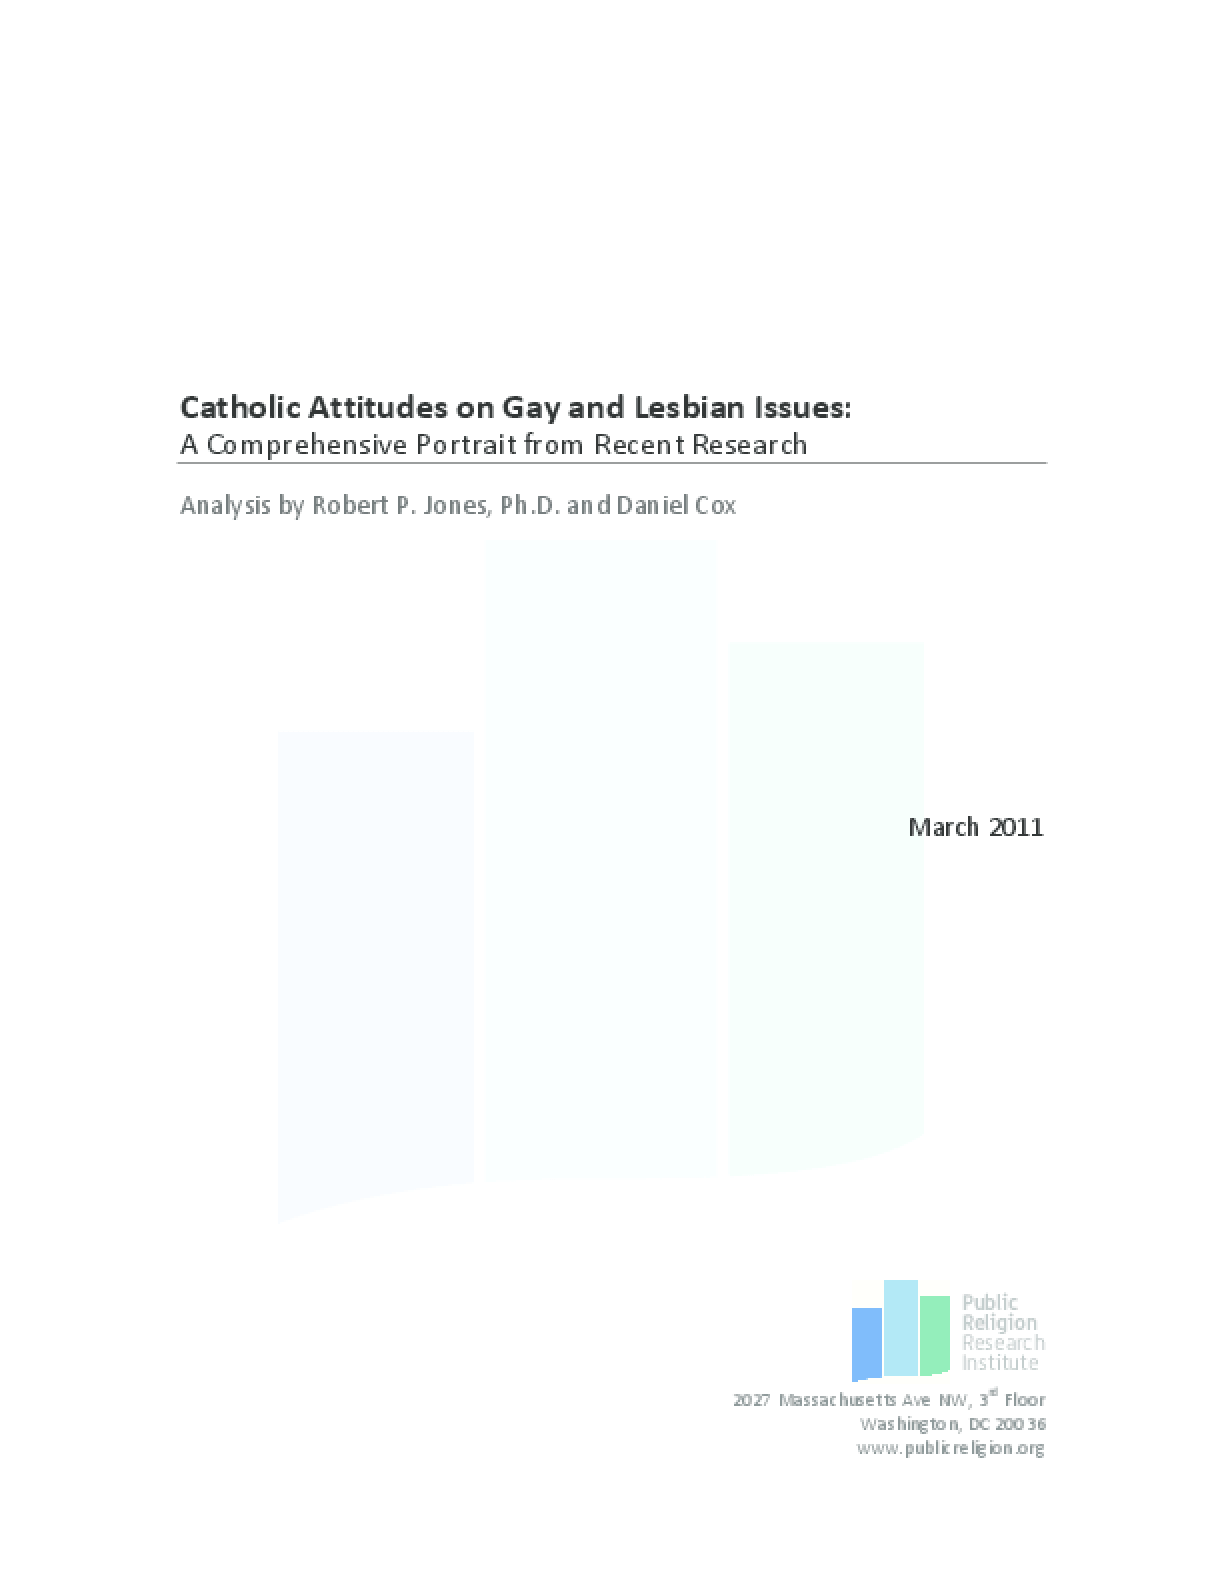 Catholic Attitudes on Gay and Lesbian Issues: A Comprehensive Portrait From Recent Research